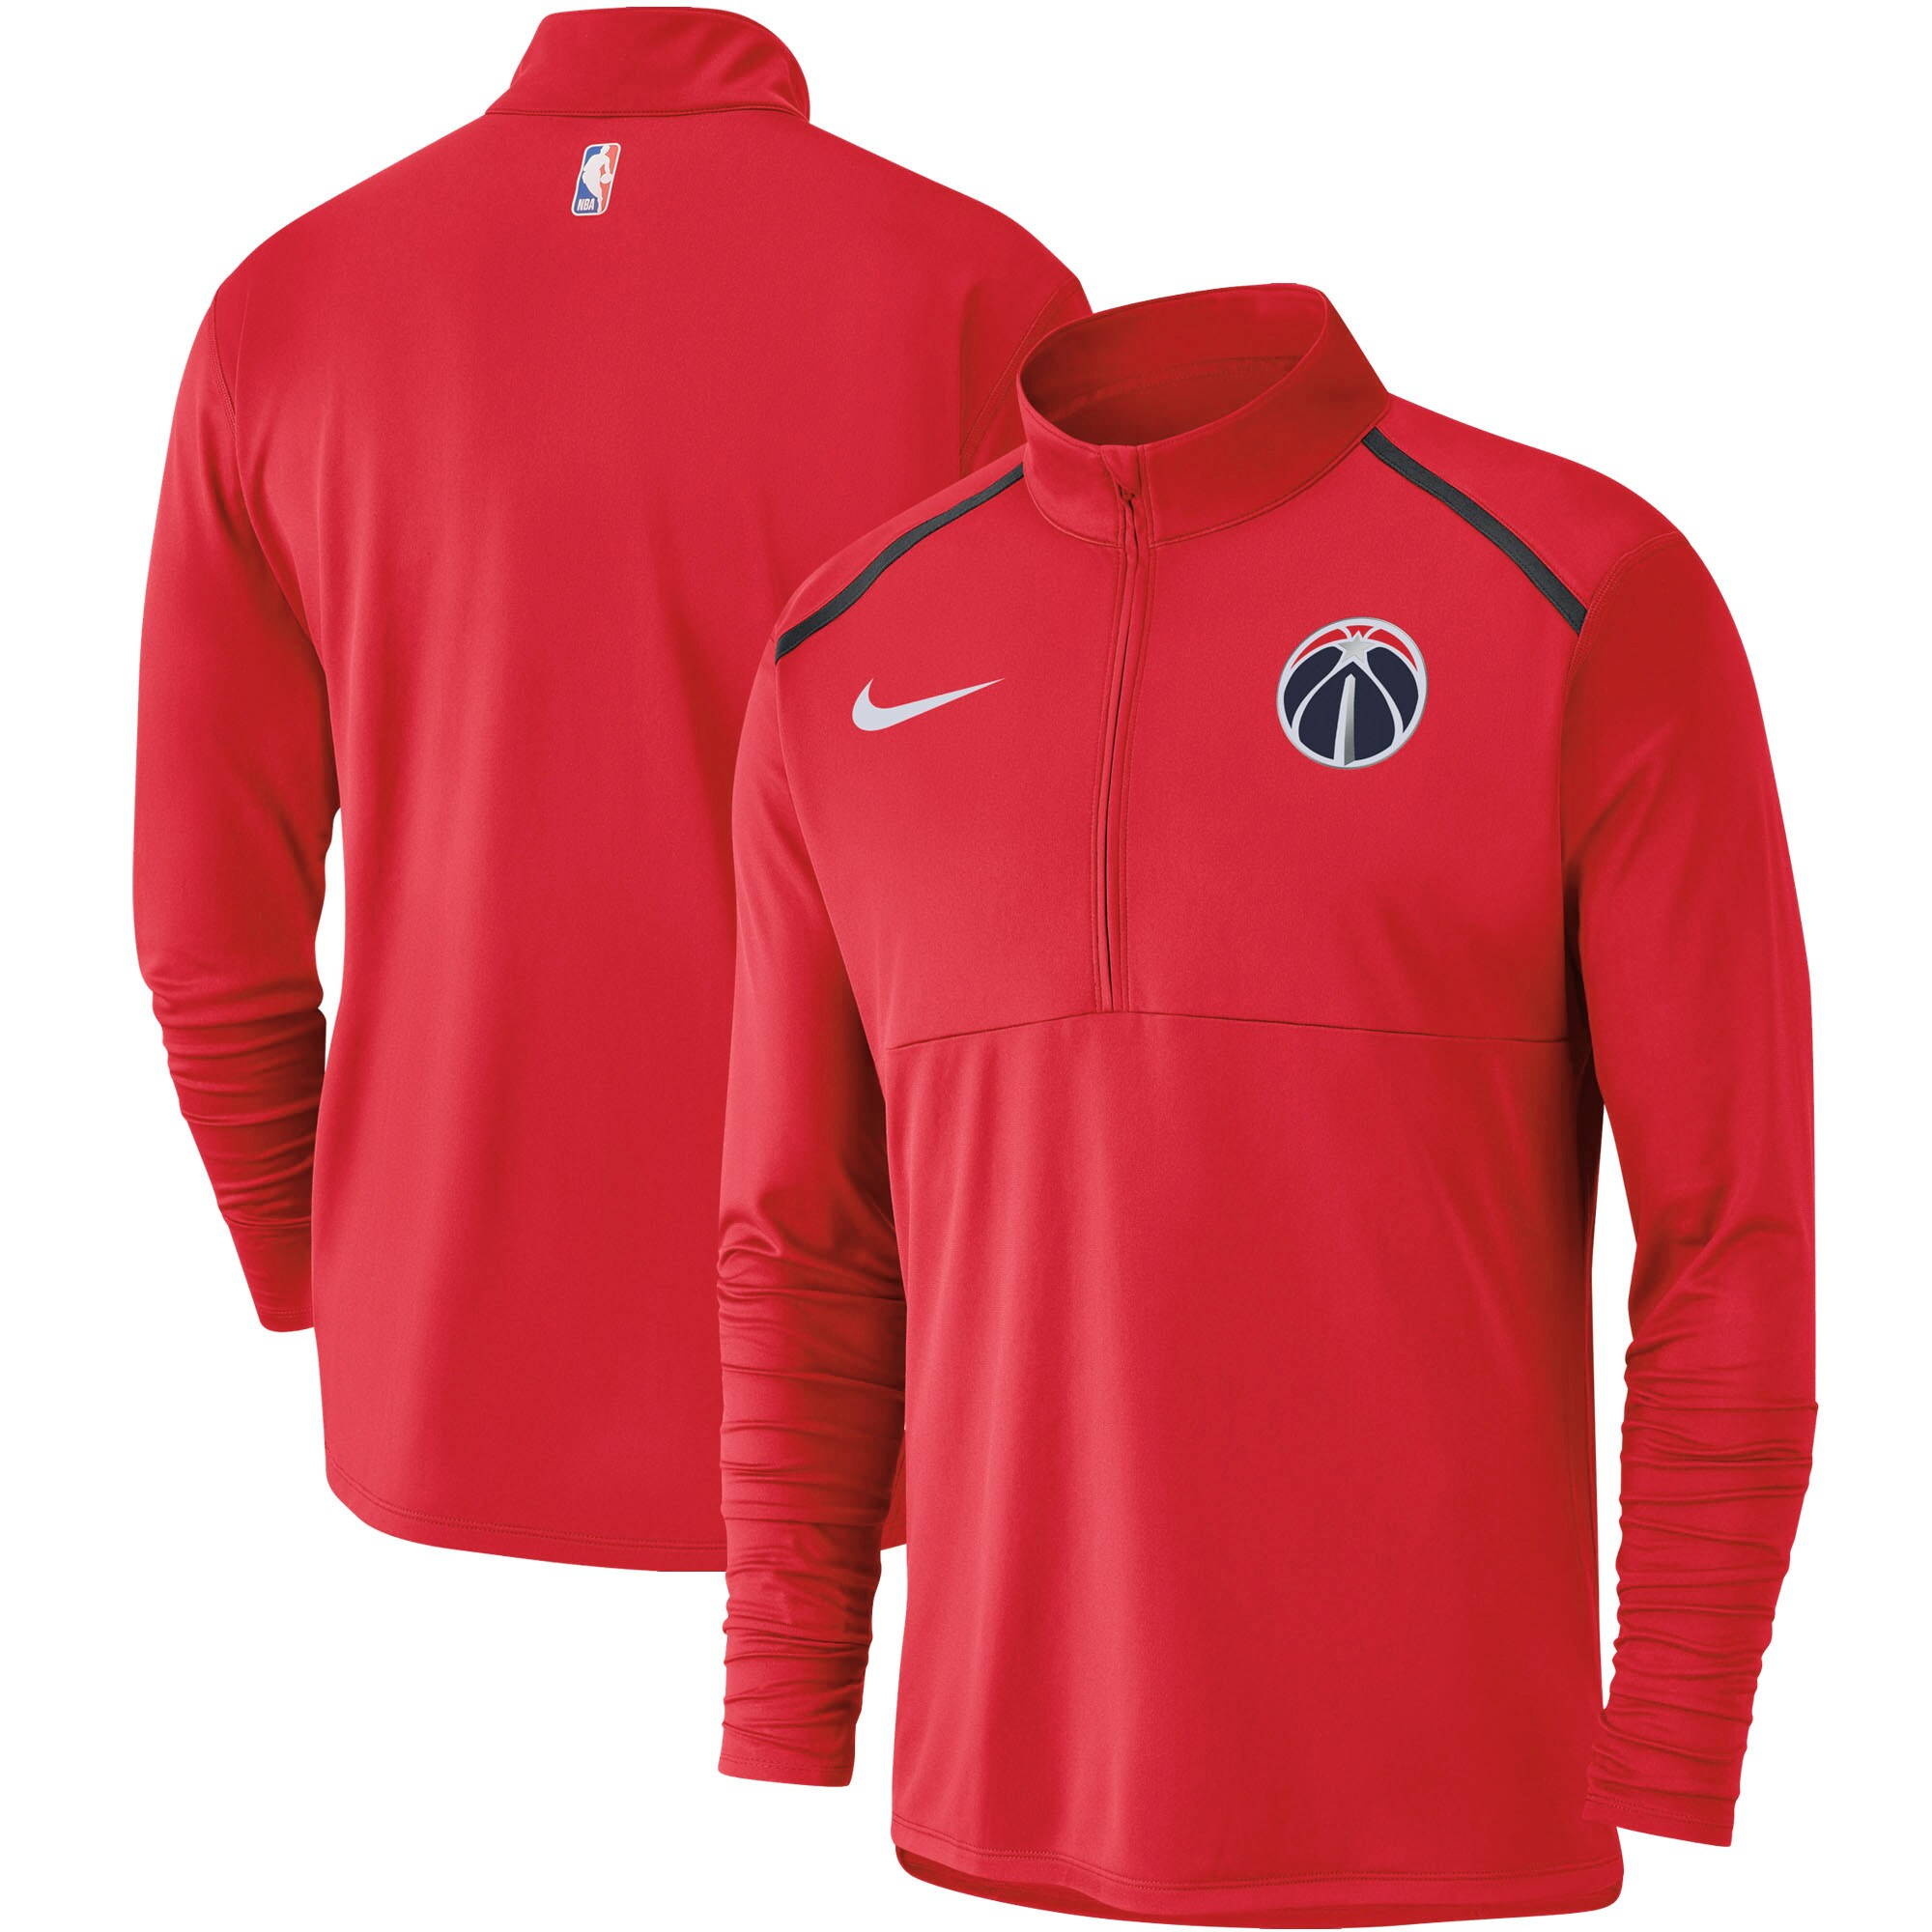 Washington Wizards Nike Element Performance Half-Zip Pullover Jacket - Red